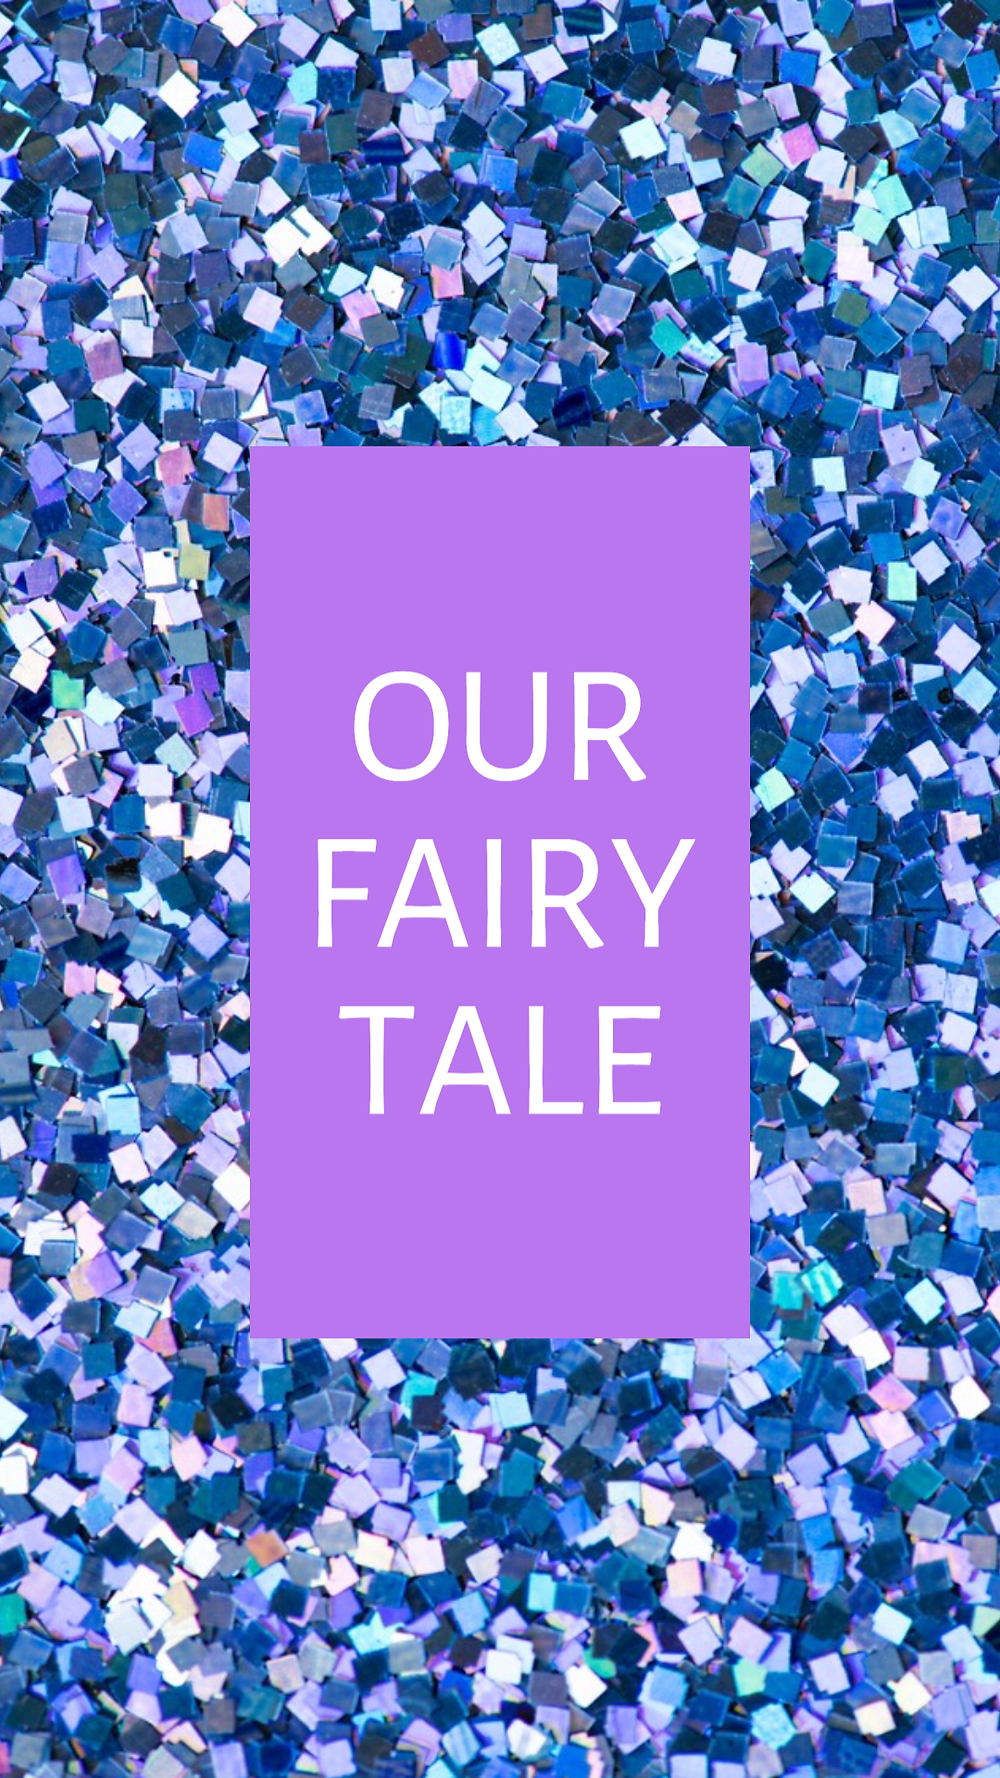 Our fairy tale social media story template with purple and blue glitter